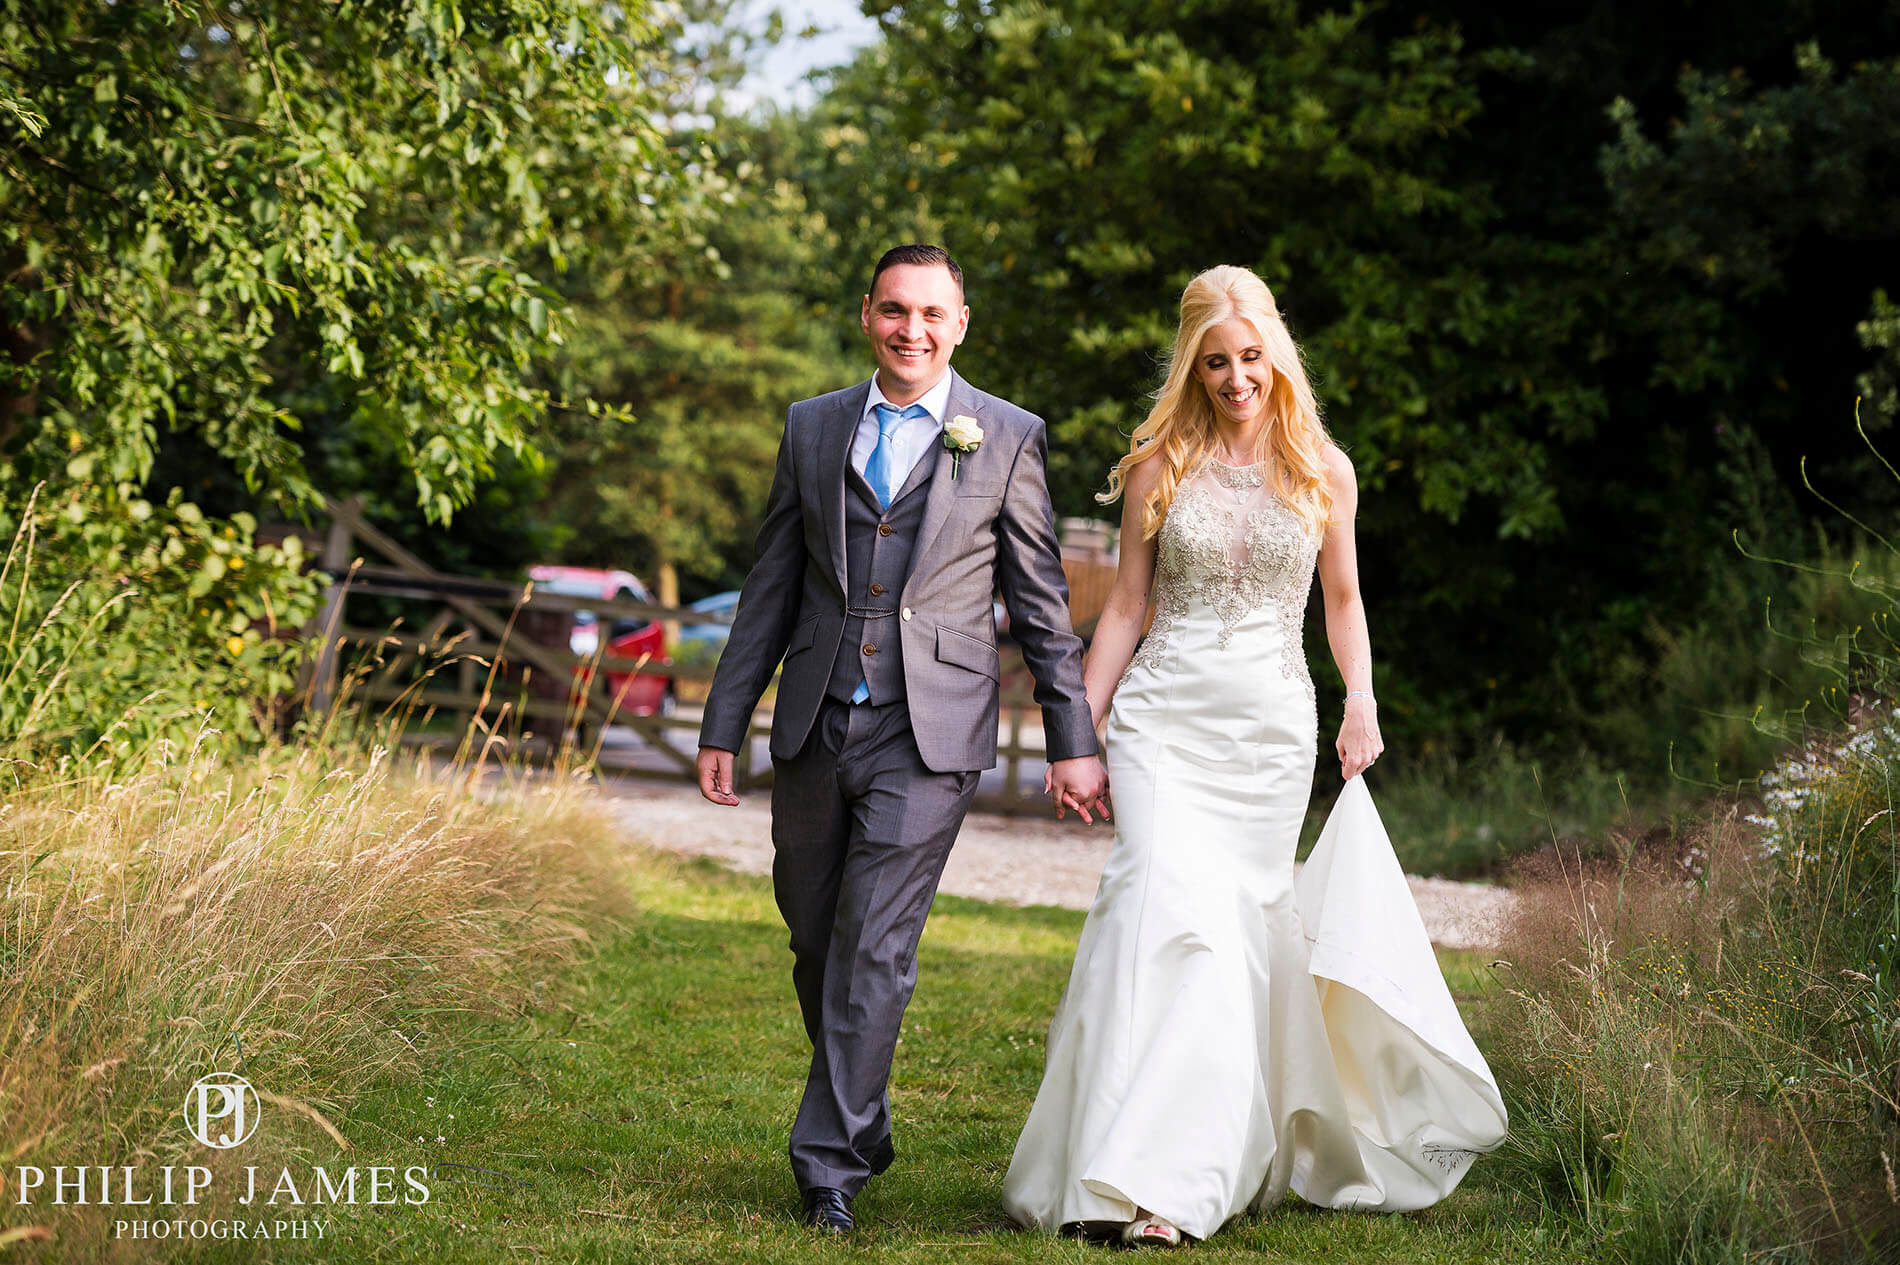 Birmingham Wedding Photographer - Philip James Photography based in Solihull (25 of 68)